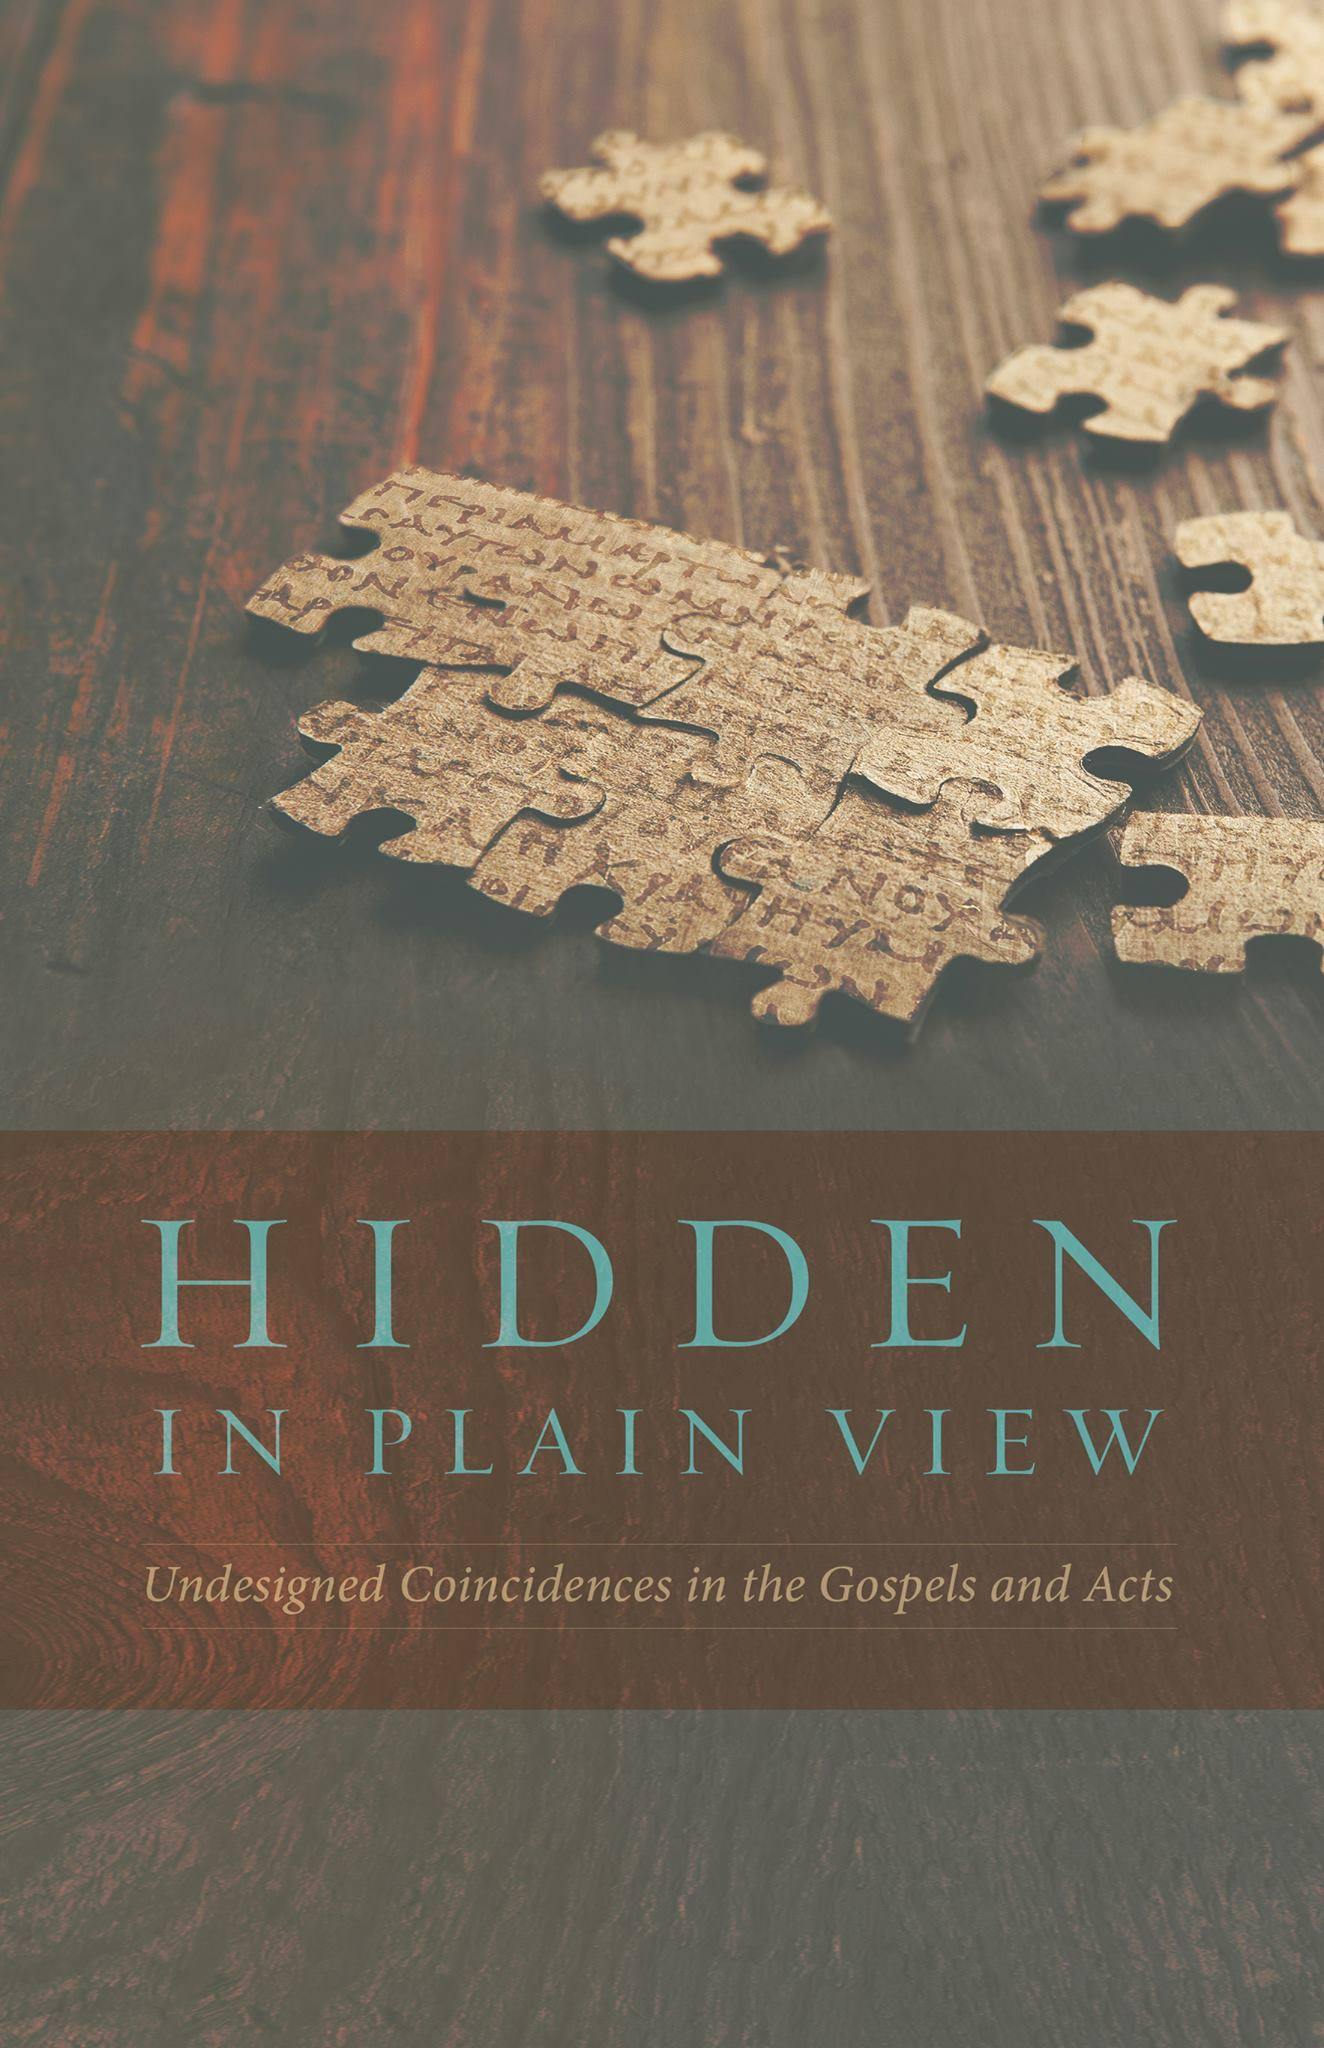 Hidden in Plain View now available on Kindle – On sale for limited time!